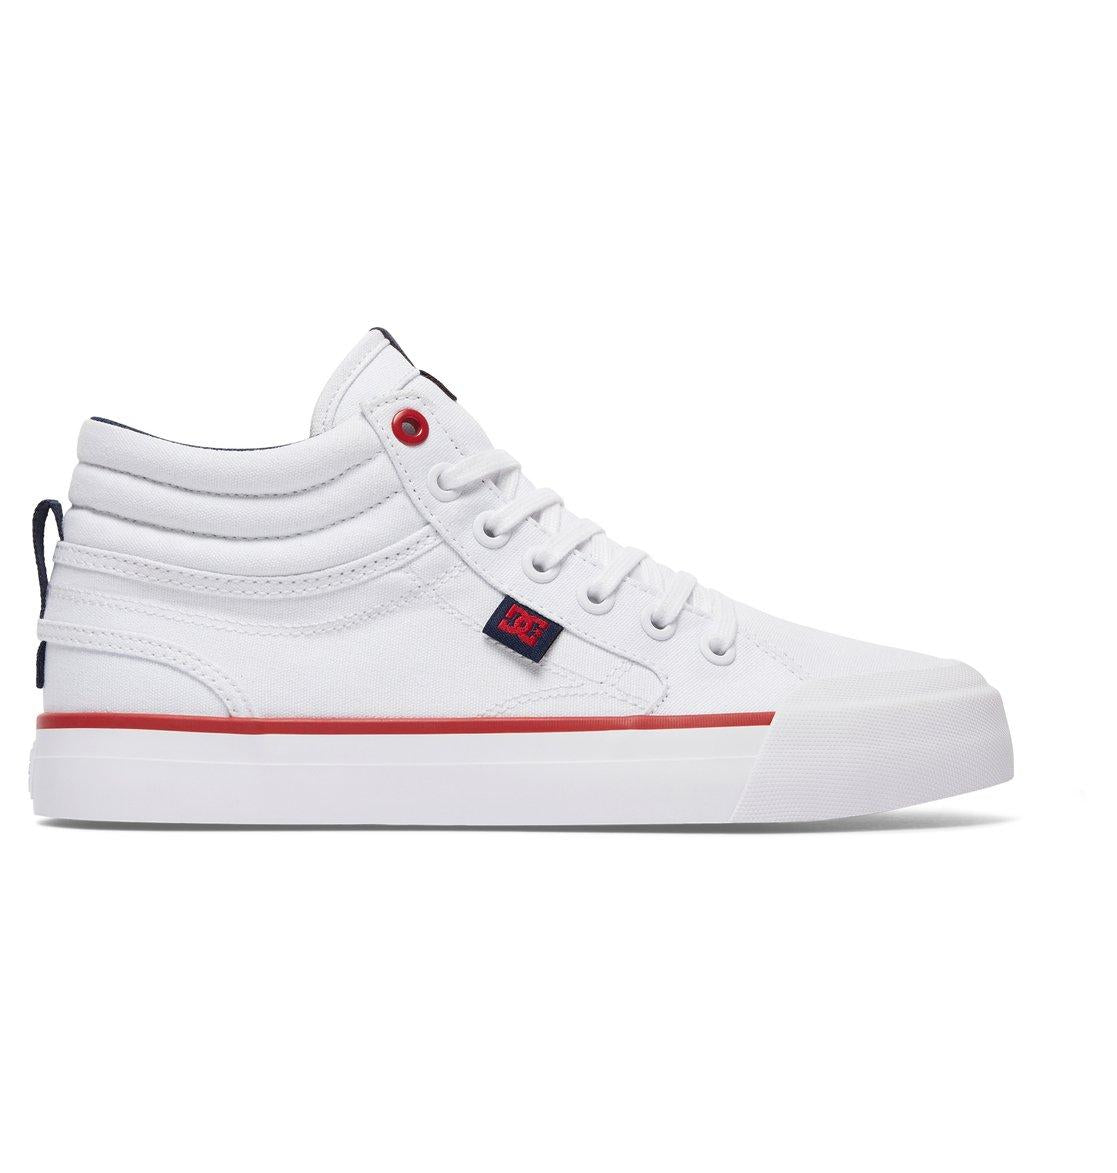 DC Ladies Evan Hi TX High Top Shoes in White/ Red